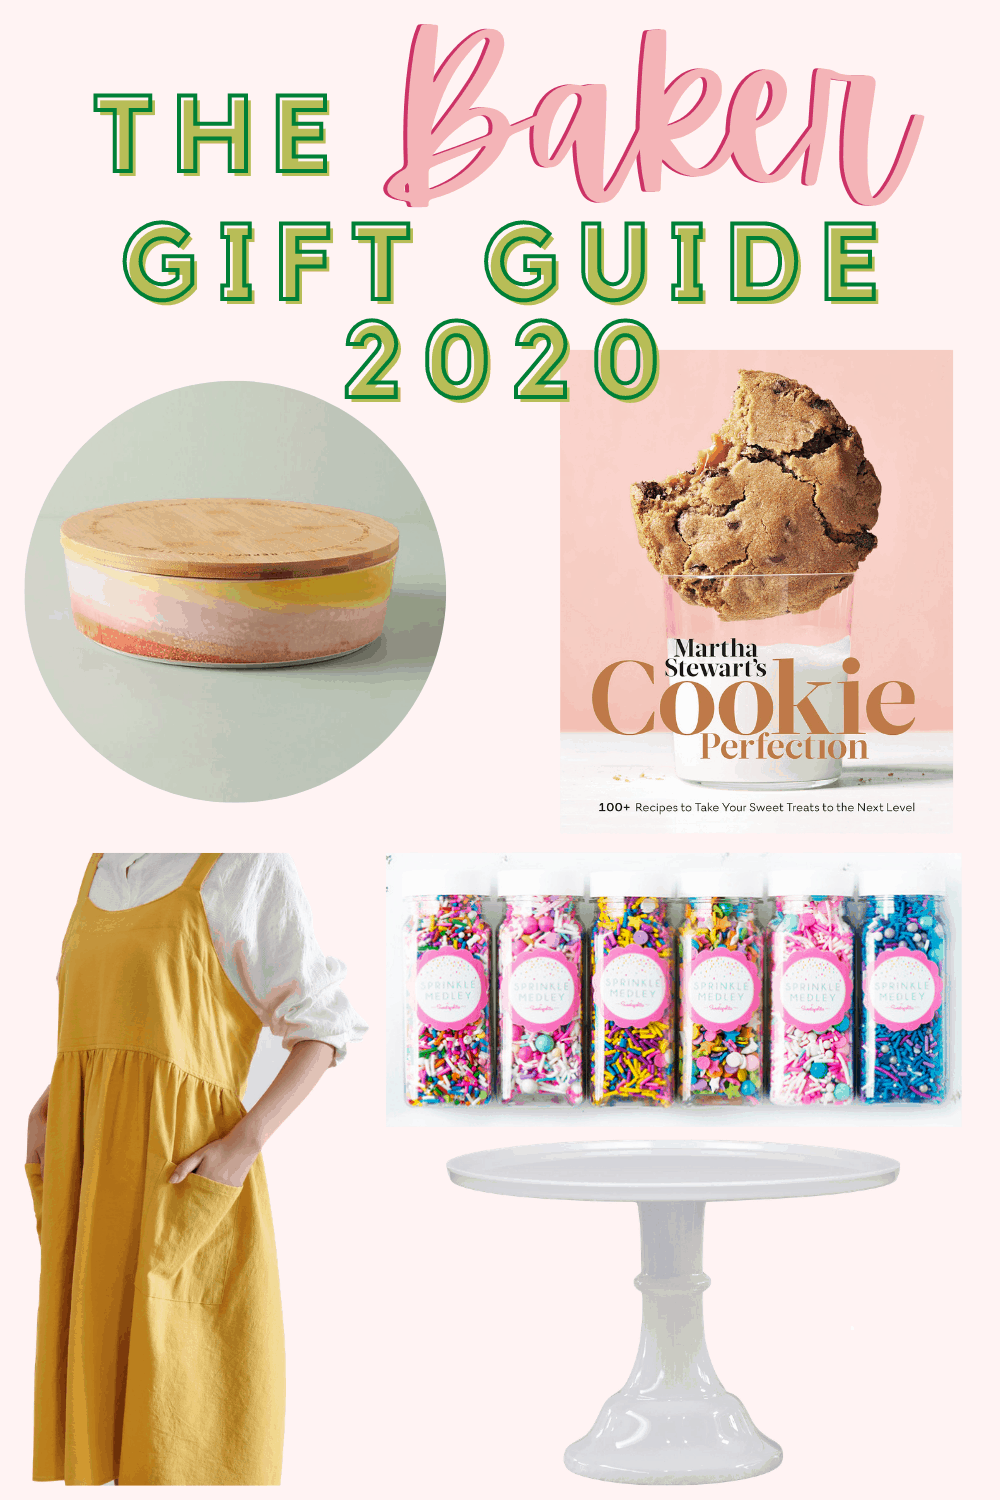 The Baker Gift Guide 2020